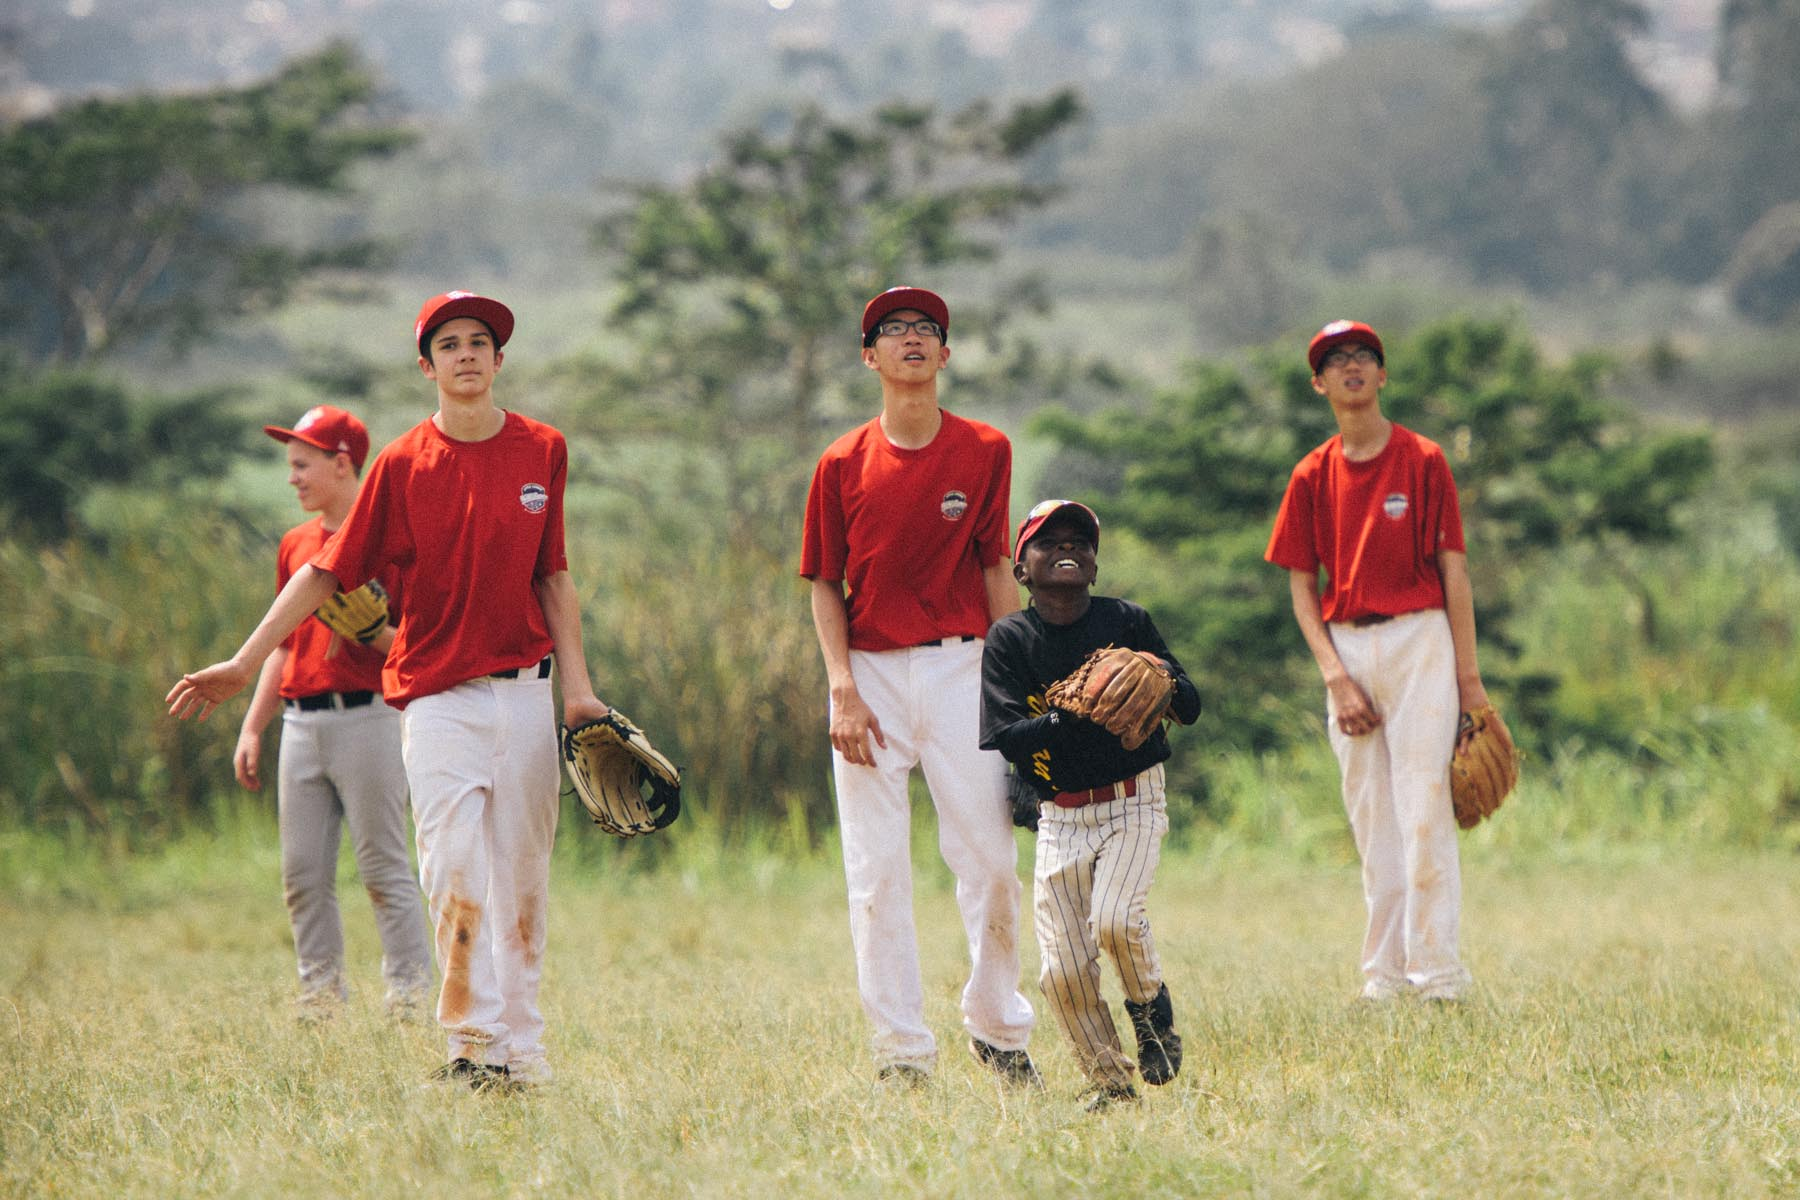 HKP-UgandaBaseball-Day7-1691.jpg